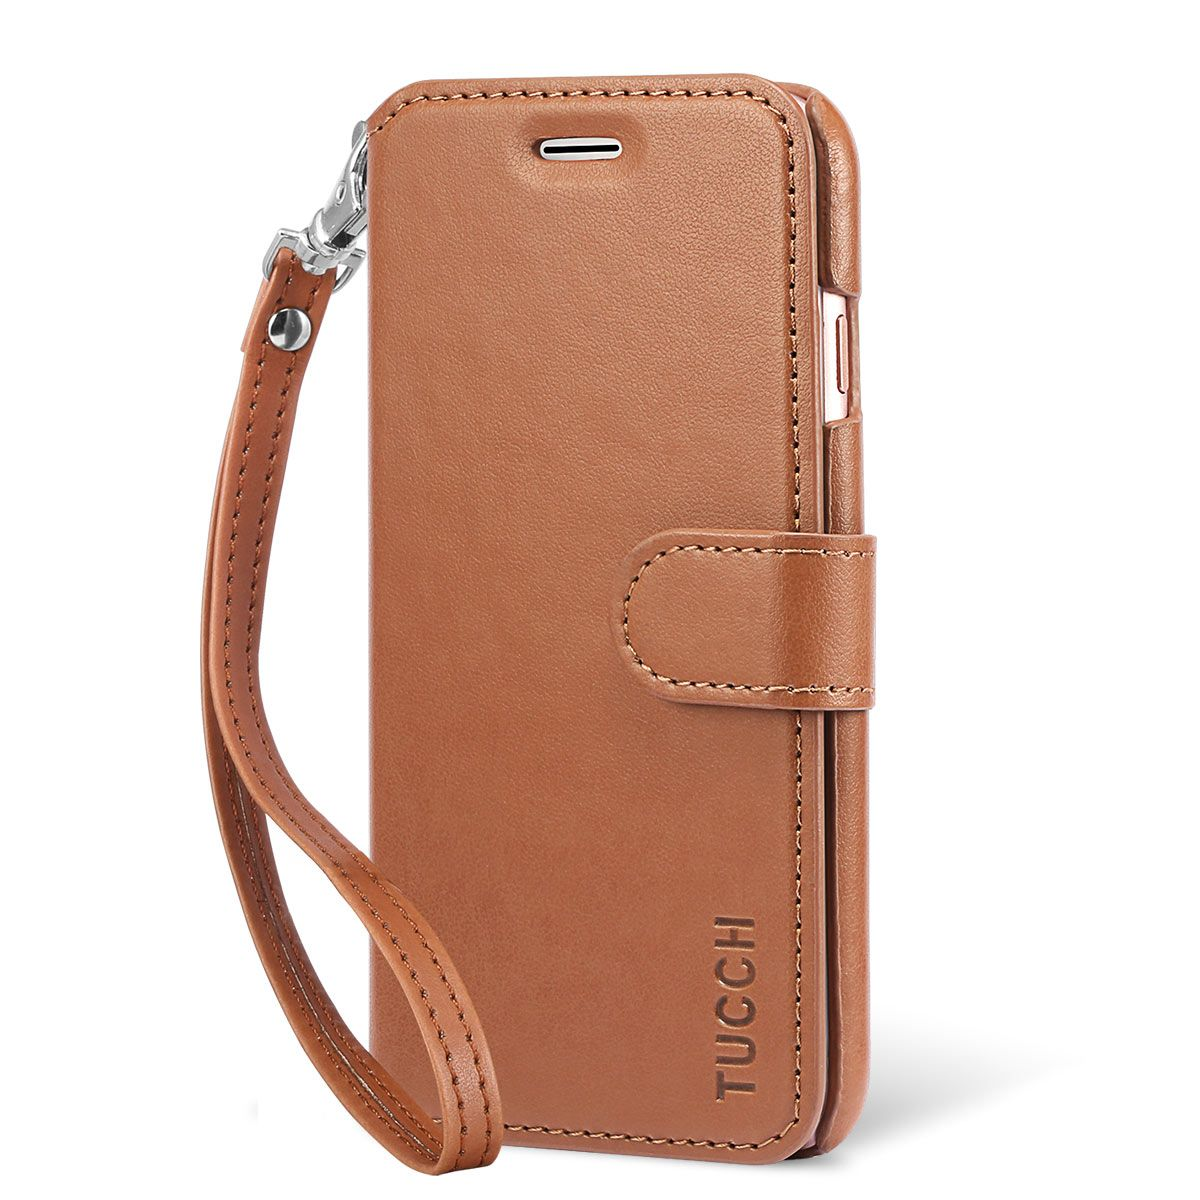 new styles 9304e 113ea TUCCH iPhone 7 PU Leather Wallet Phone Case, Wrist Strap, Magnetic Closure